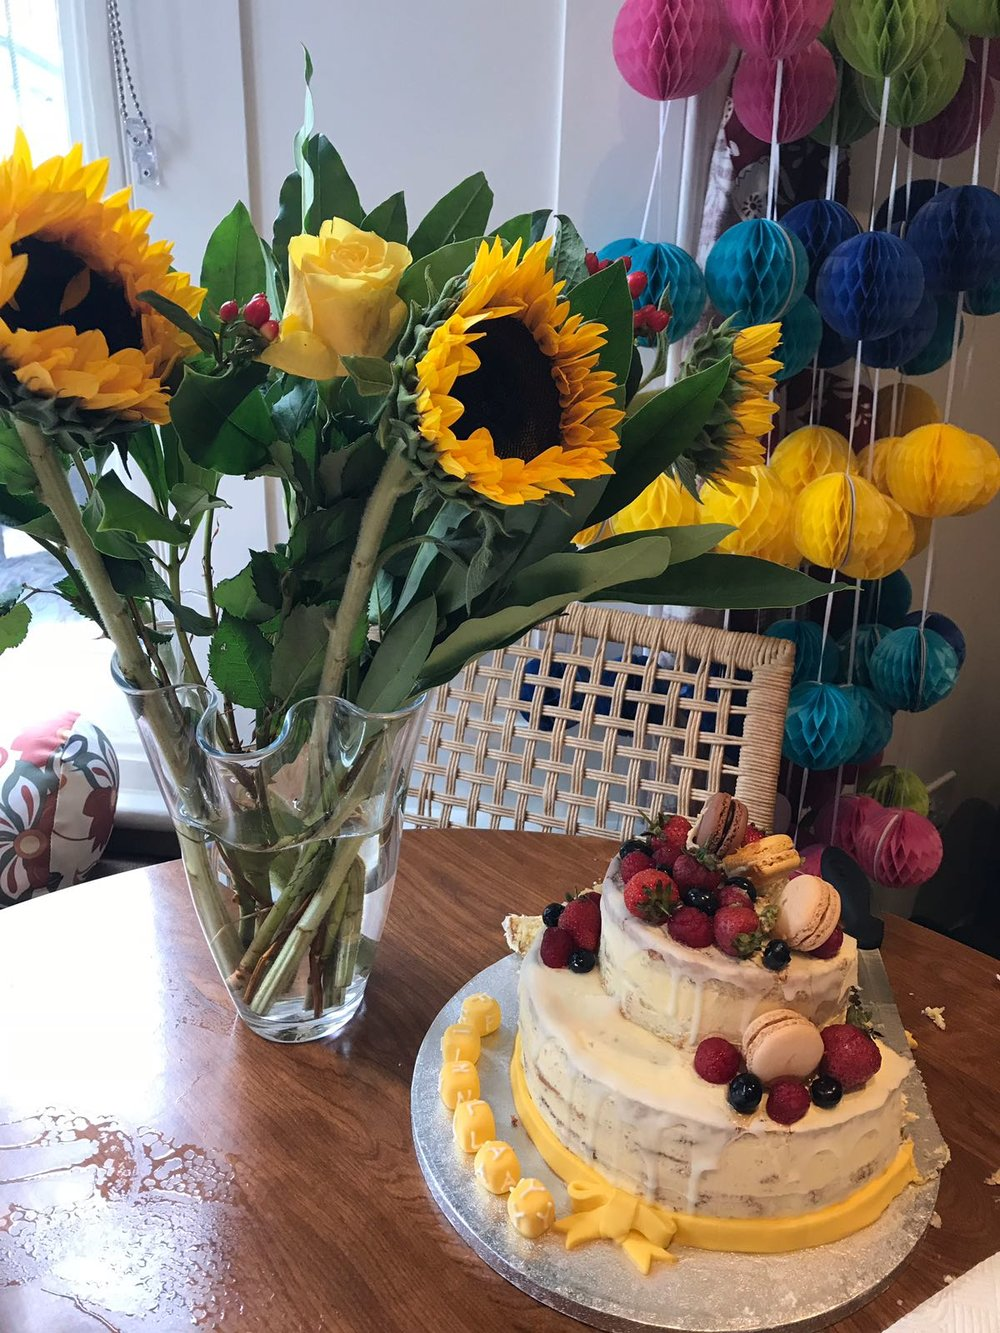 A delicious lemon and elderflower cake and a bunch of sunflowers. Gorgeous!